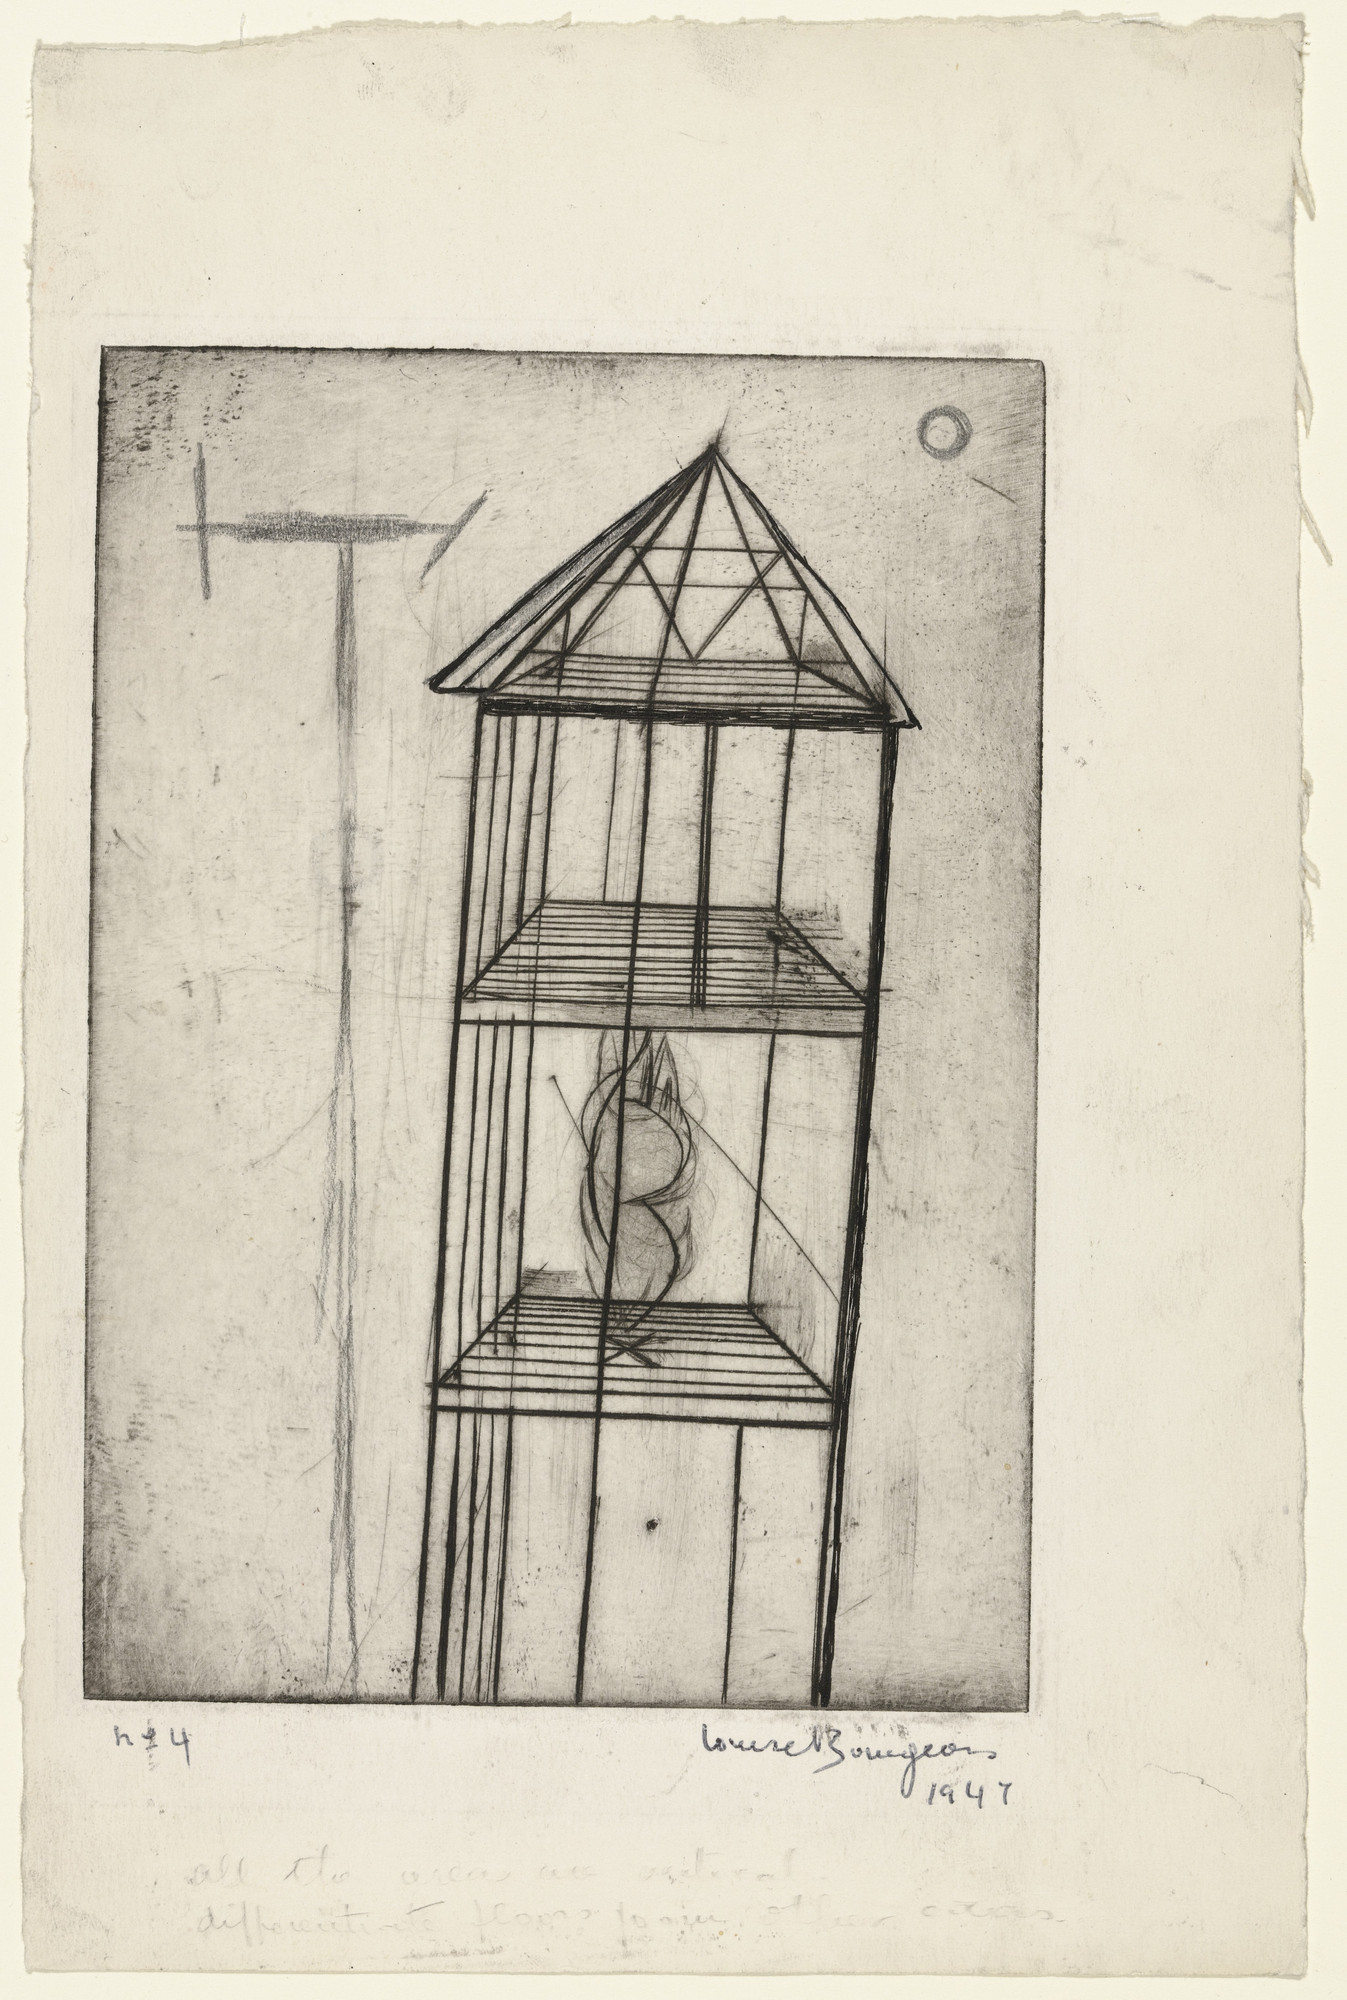 Louise Bourgeois. Plate 4 of 9, from the illustrated book, He Disappeared into Complete Silence. 1947